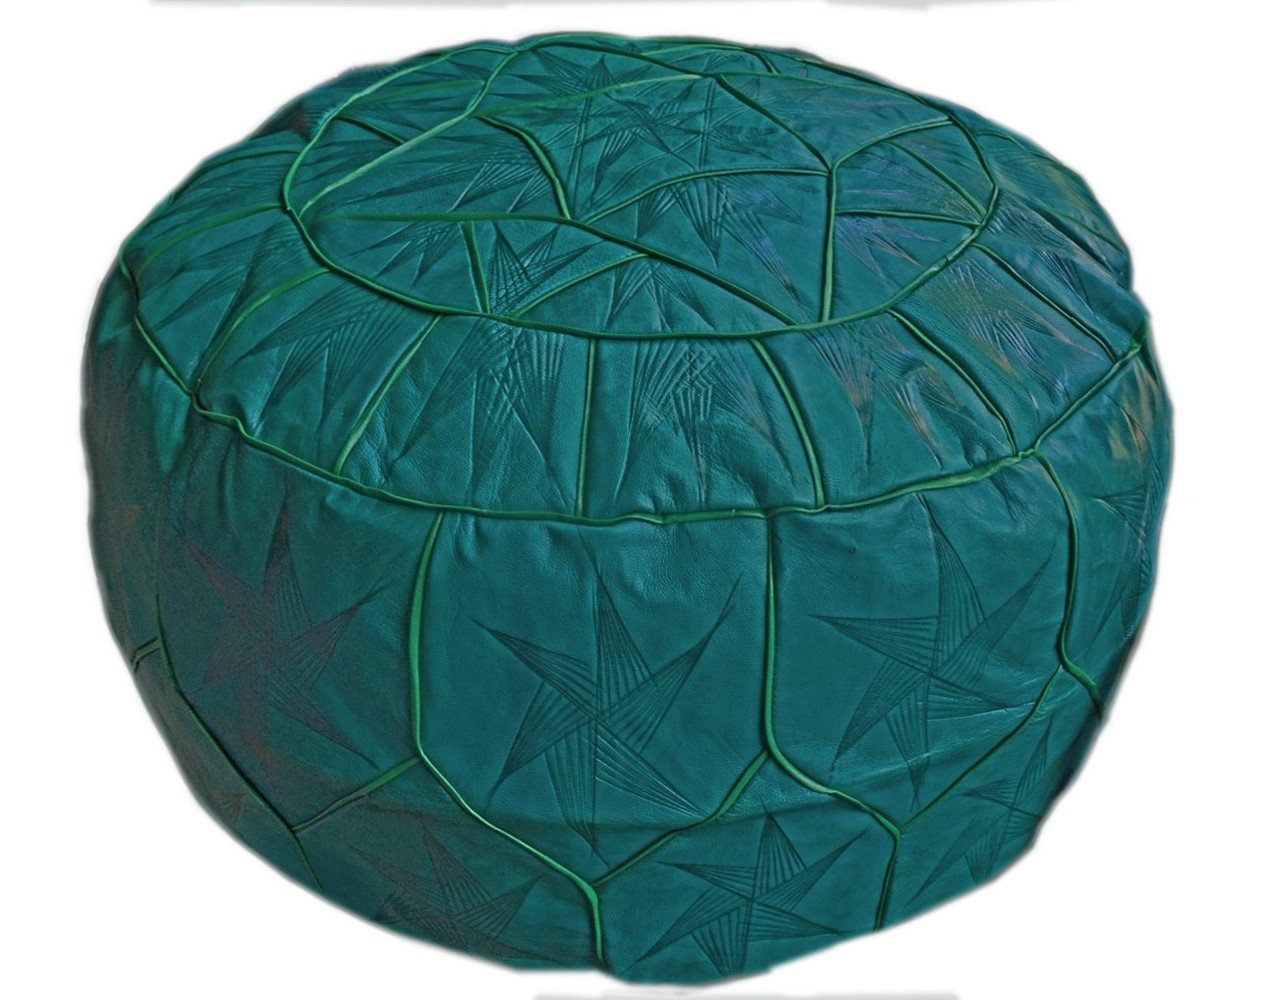 Egyptian Morrocan Handmade Genuine Leather Ottoman Pouf Xl (Teal / Green)